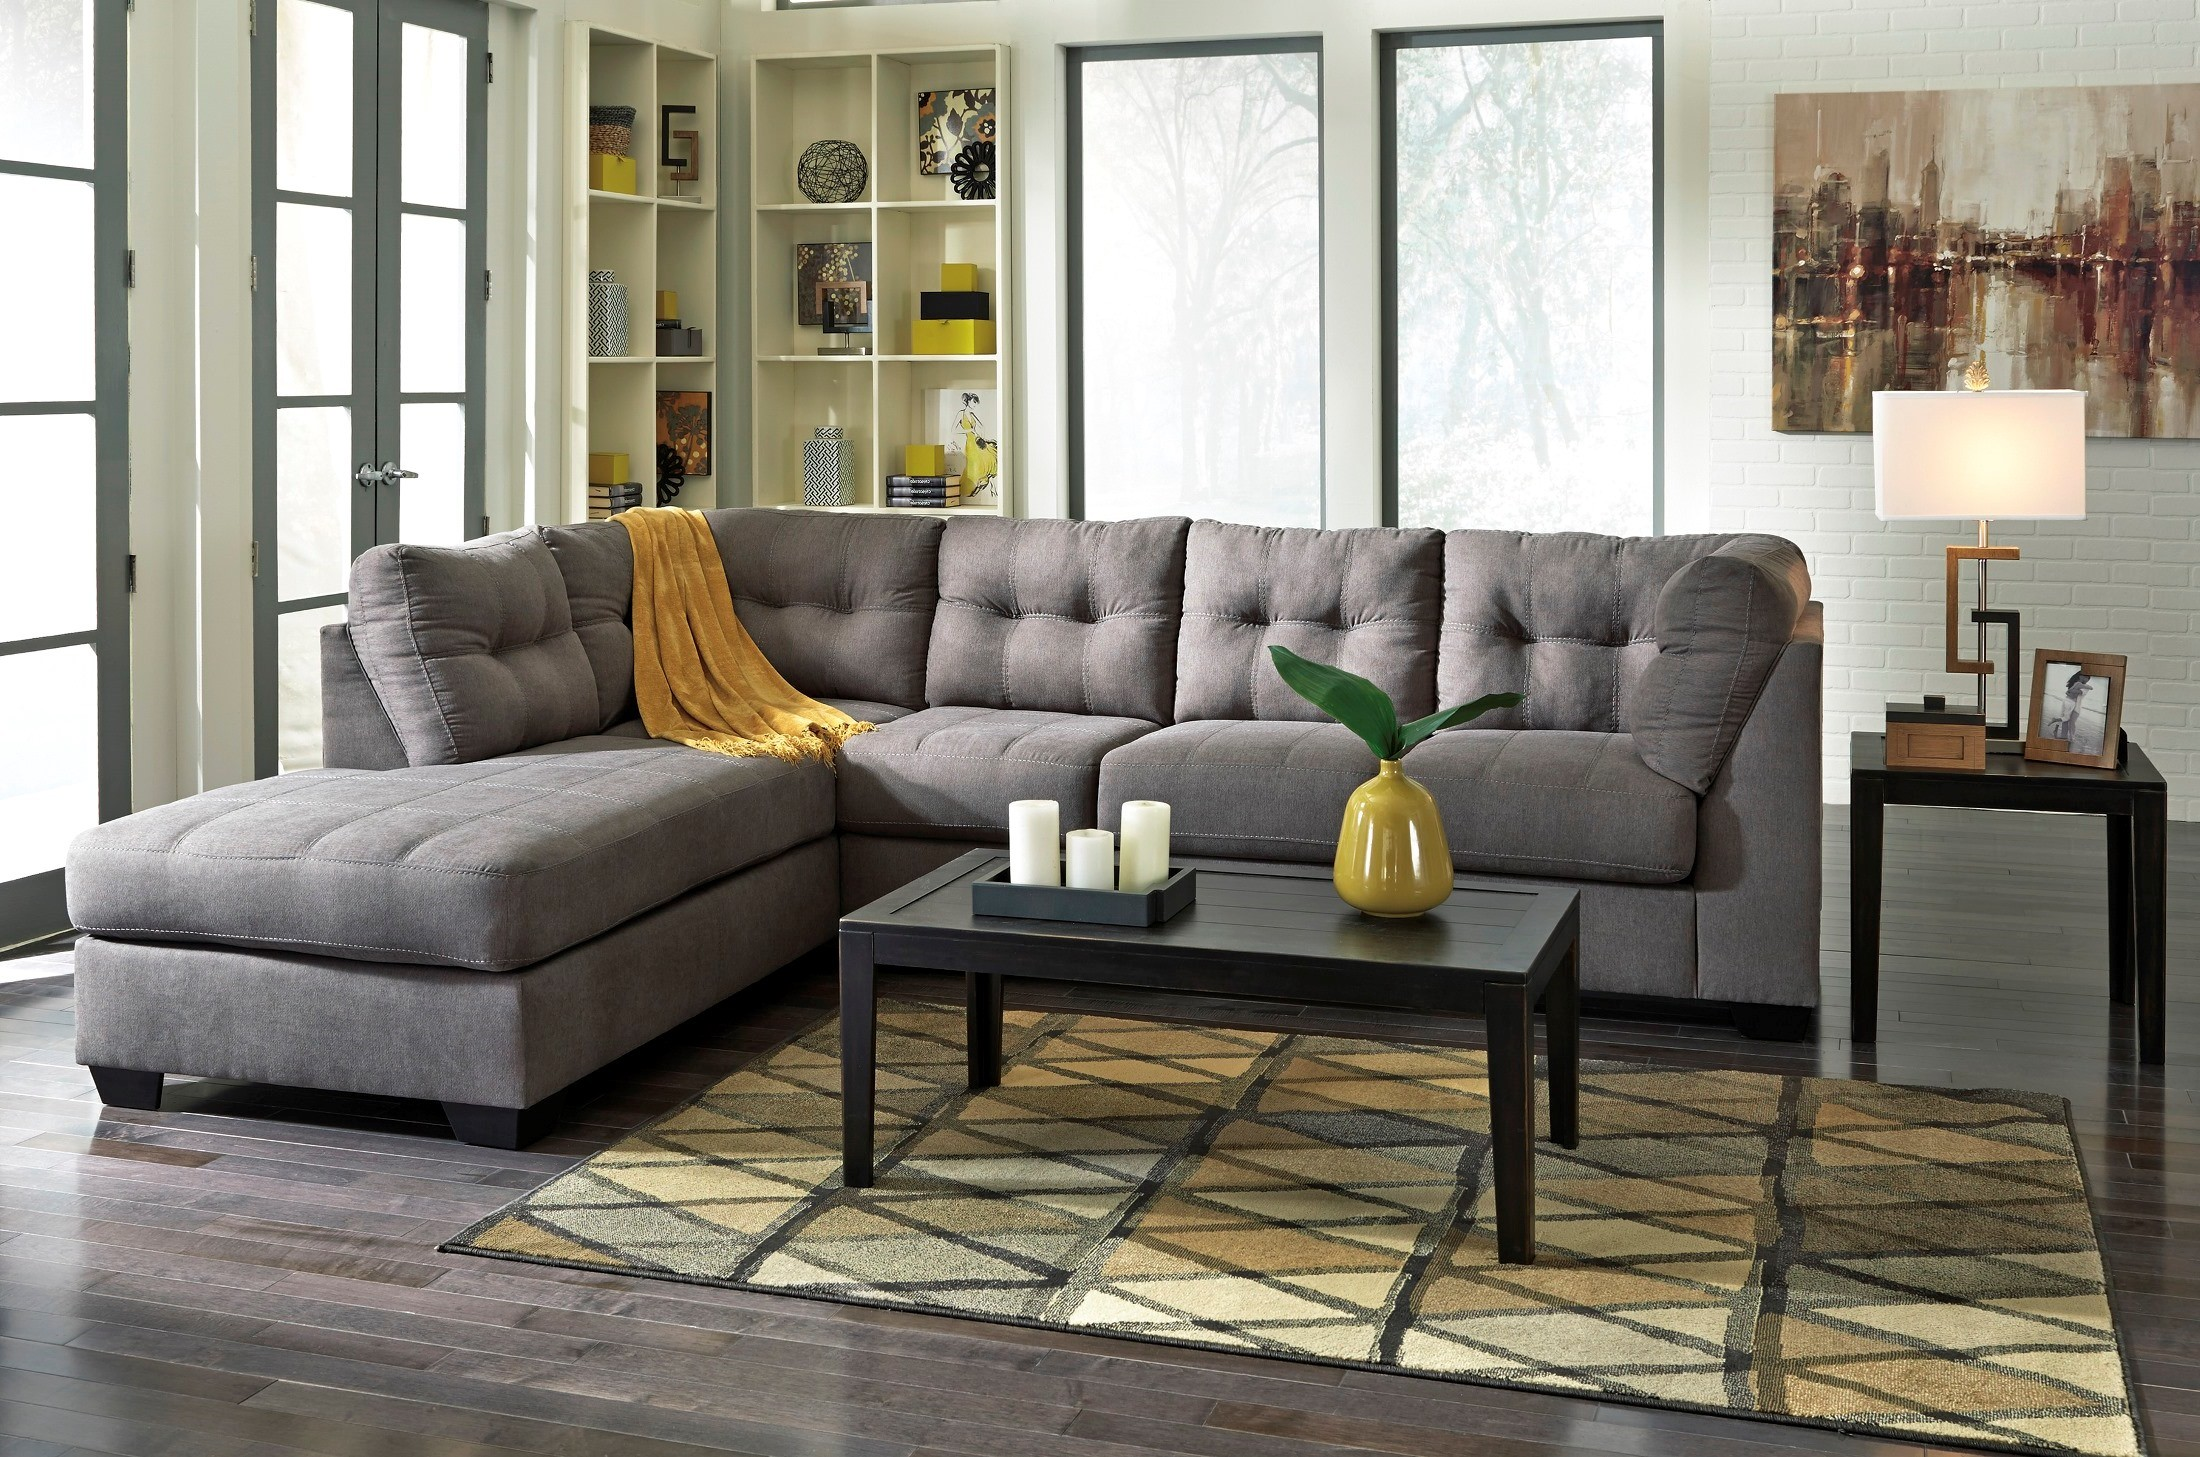 Maier Charcoal Laf Sectional From Ashley 45200 16 67 Coleman Furniture